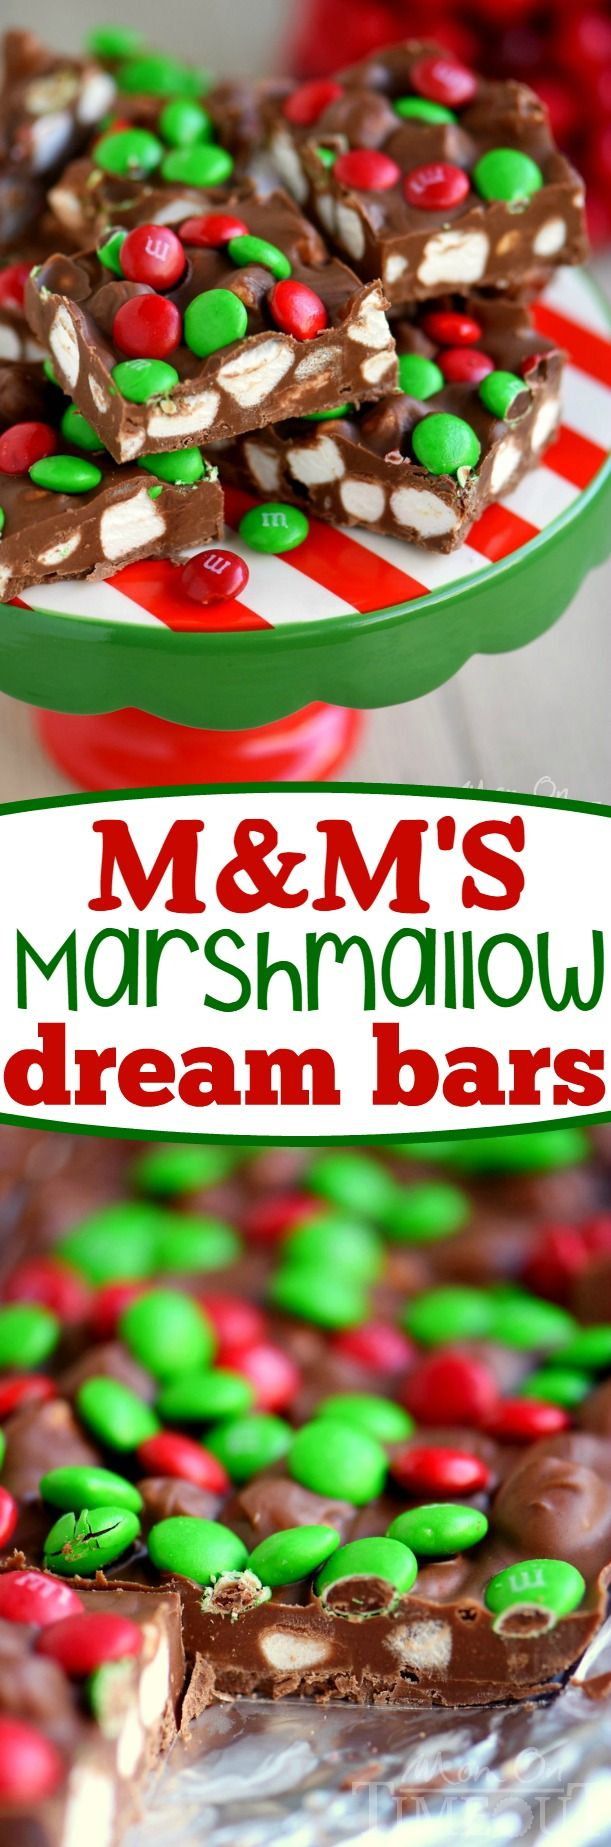 These M&M's Marshmallow Dream Bars are as easy as 1-2-3 and will disappear just that quickly. Made with just a handful of ingredients, no bake, five minutes max - these bars are most definitely what dreams are made of! An easy dessert recipe that is just perfect for the holidays!: